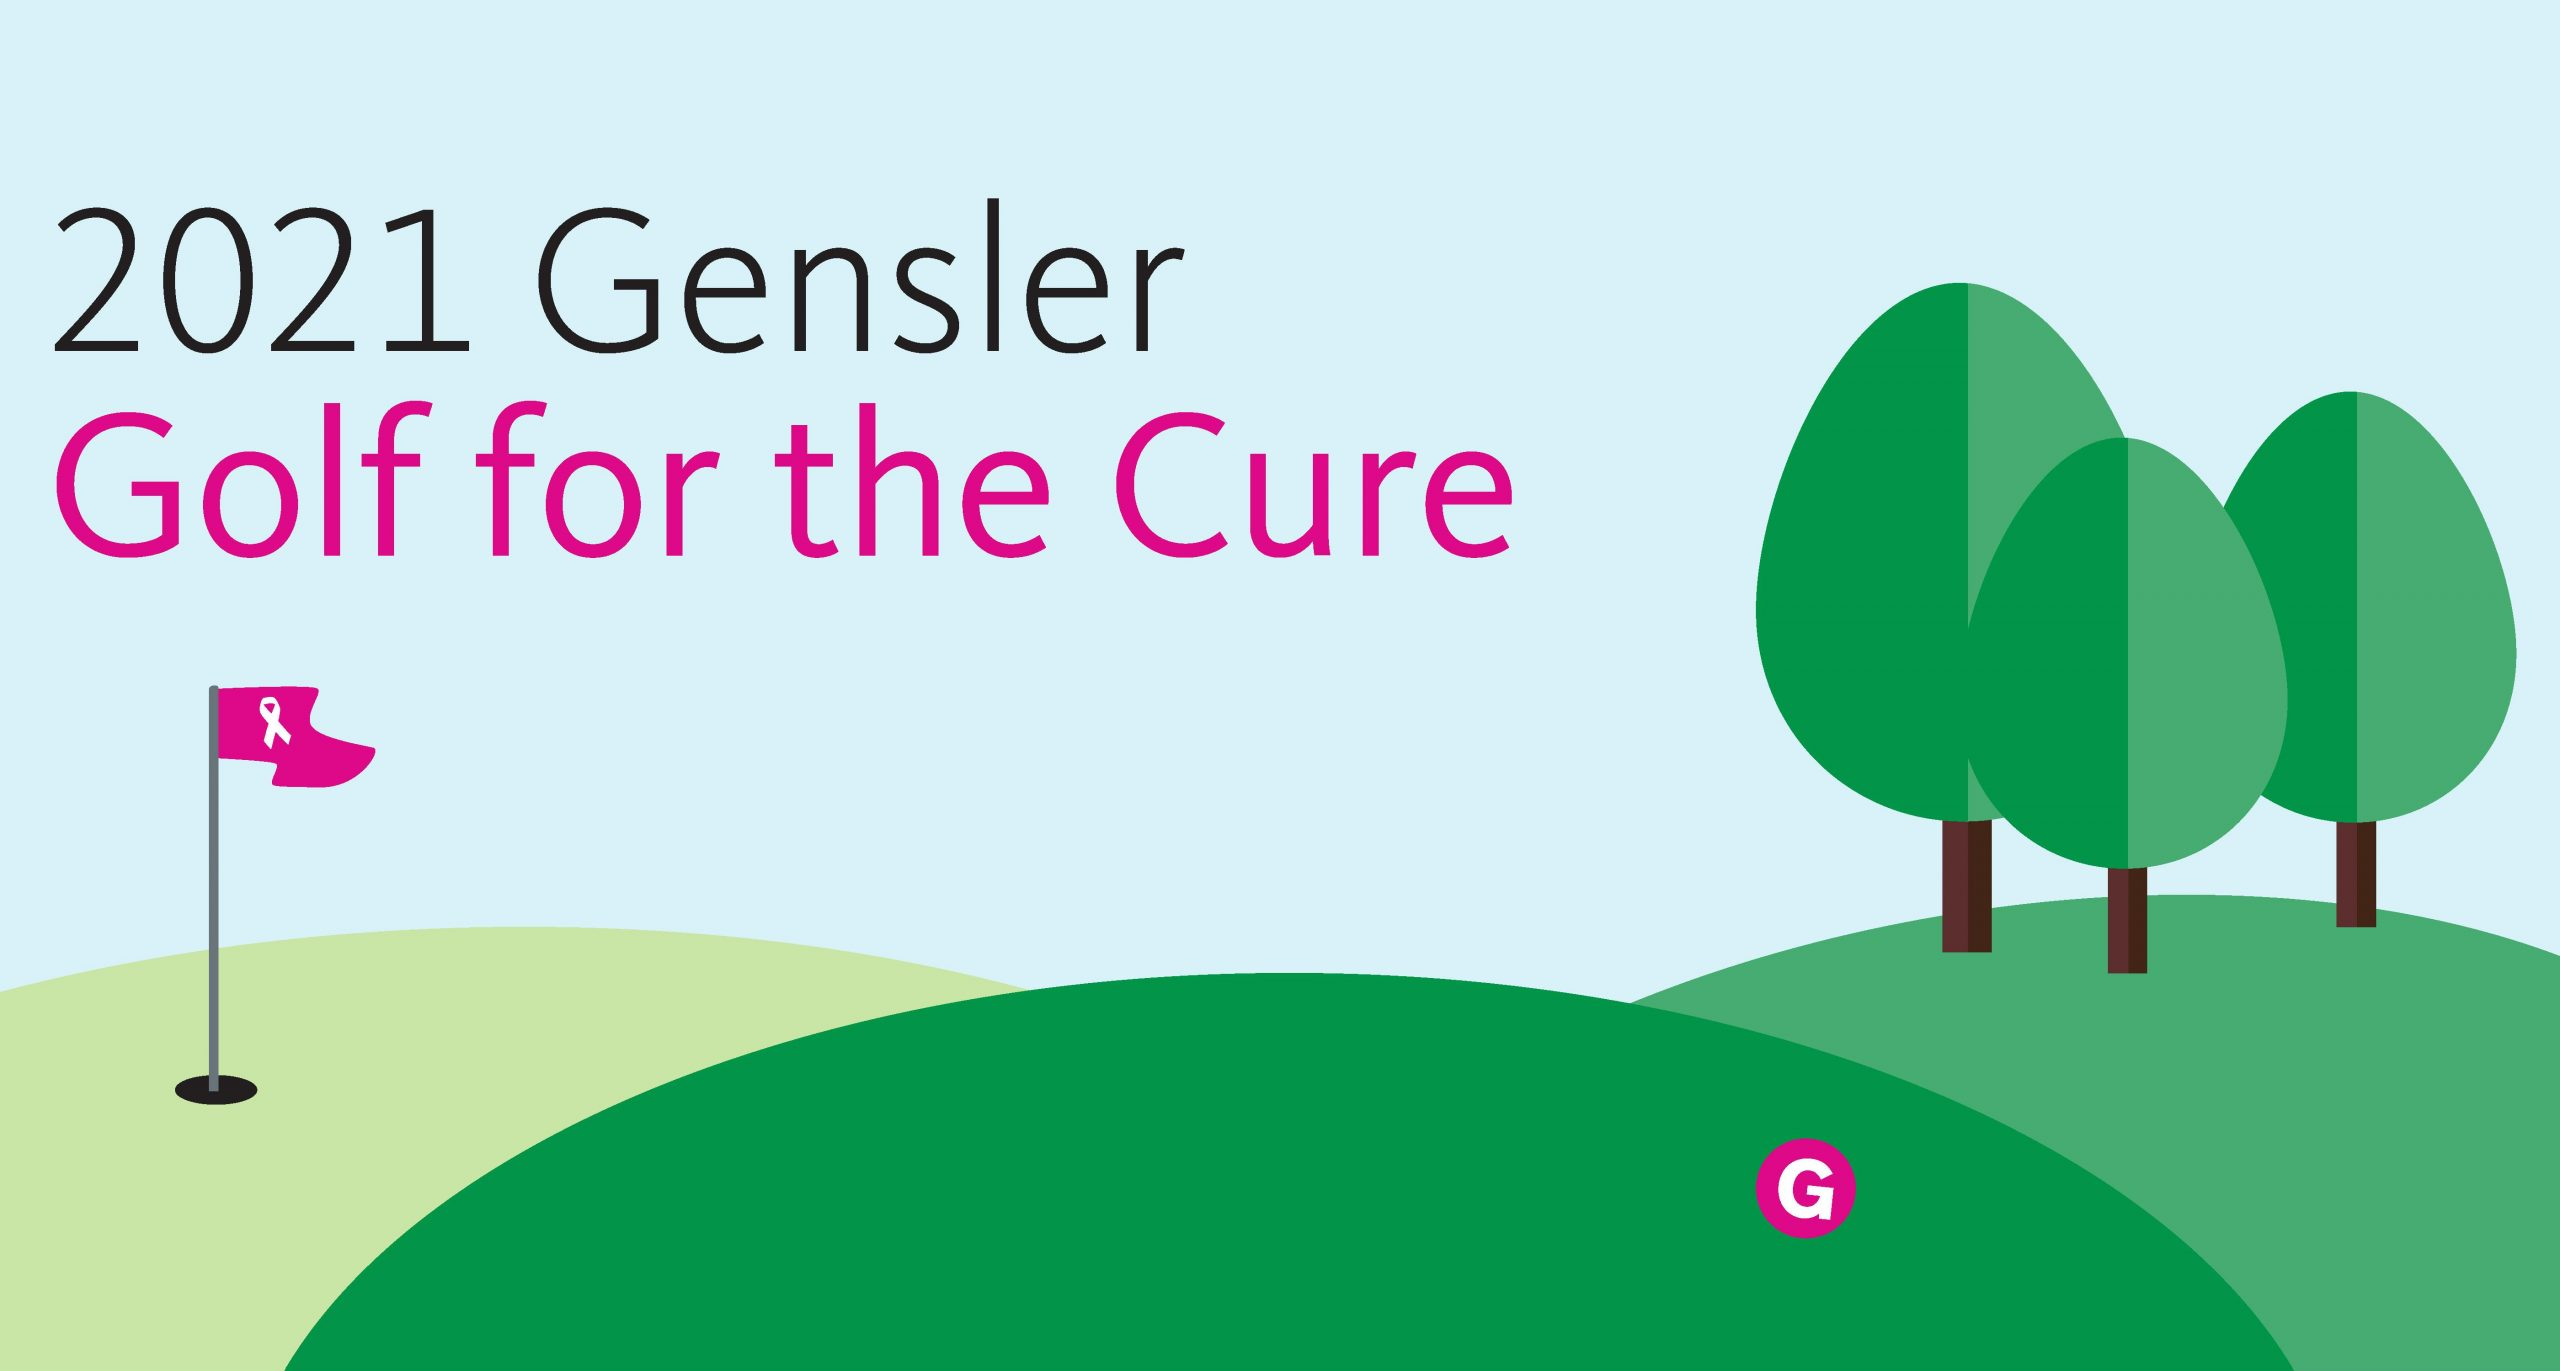 Gensler Golf for the Cure 2021